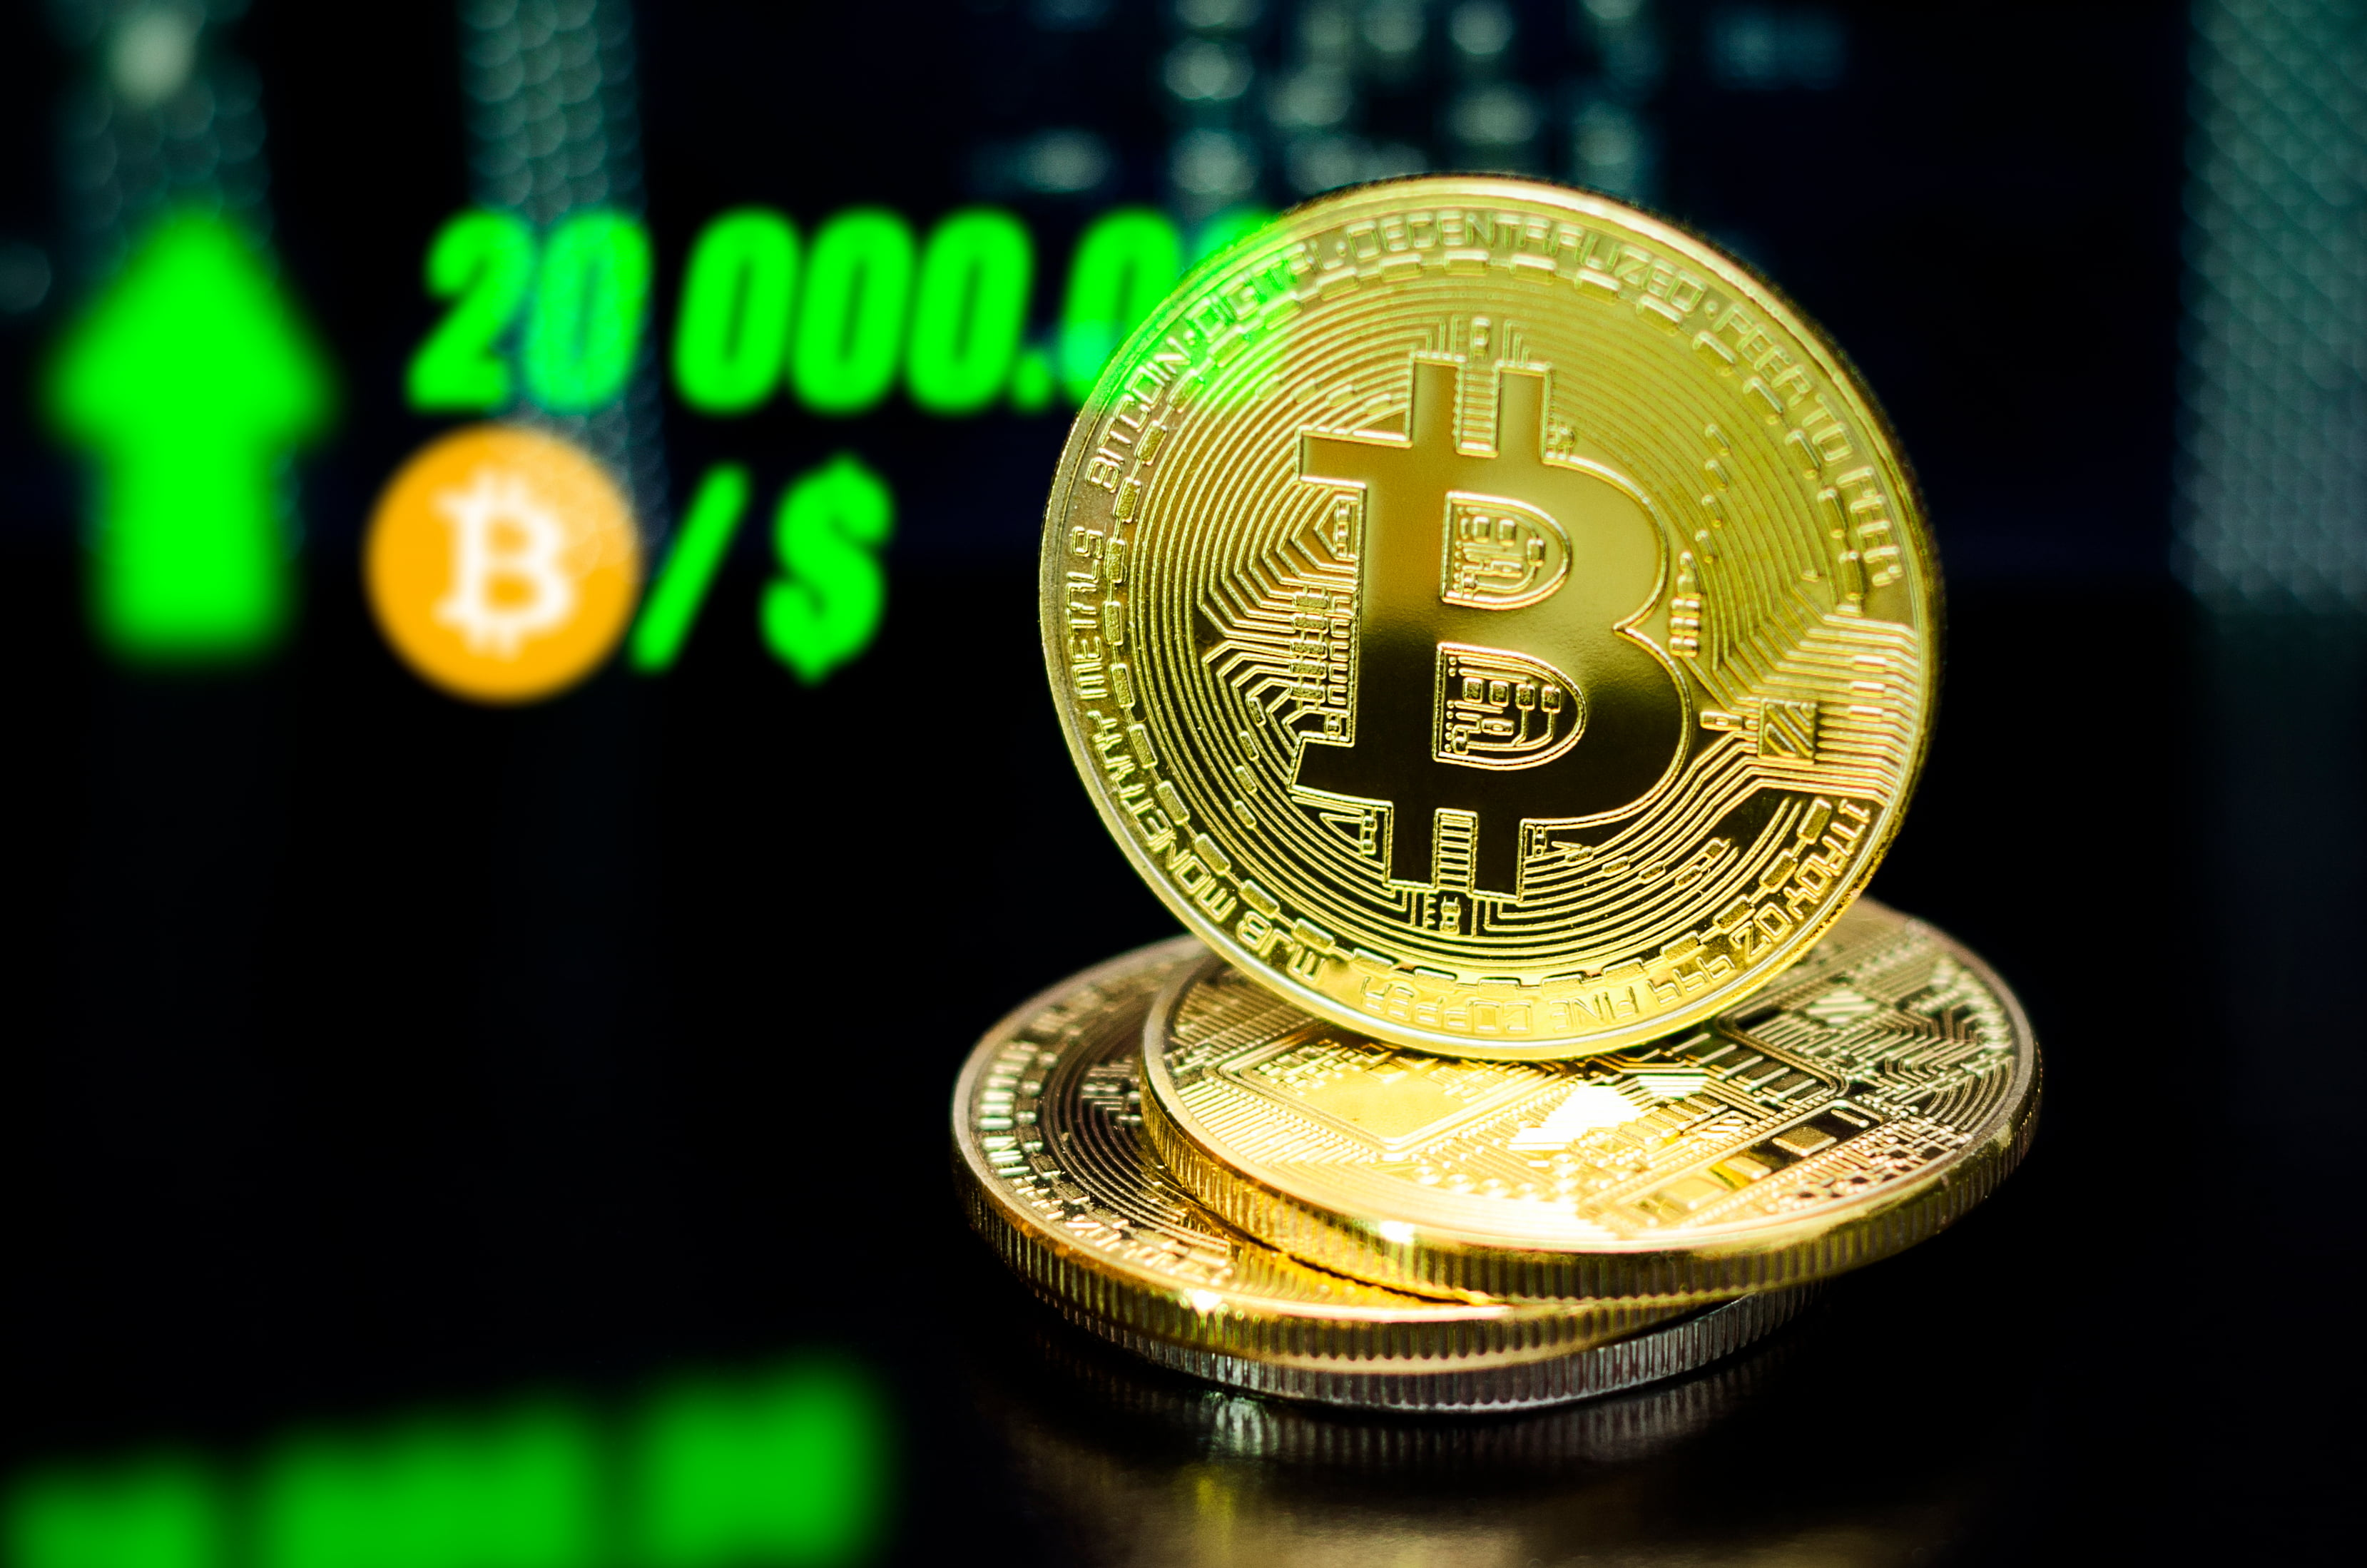 Analysts: Bitcoin Price (BTC) To Revisit $20,000 in March ...